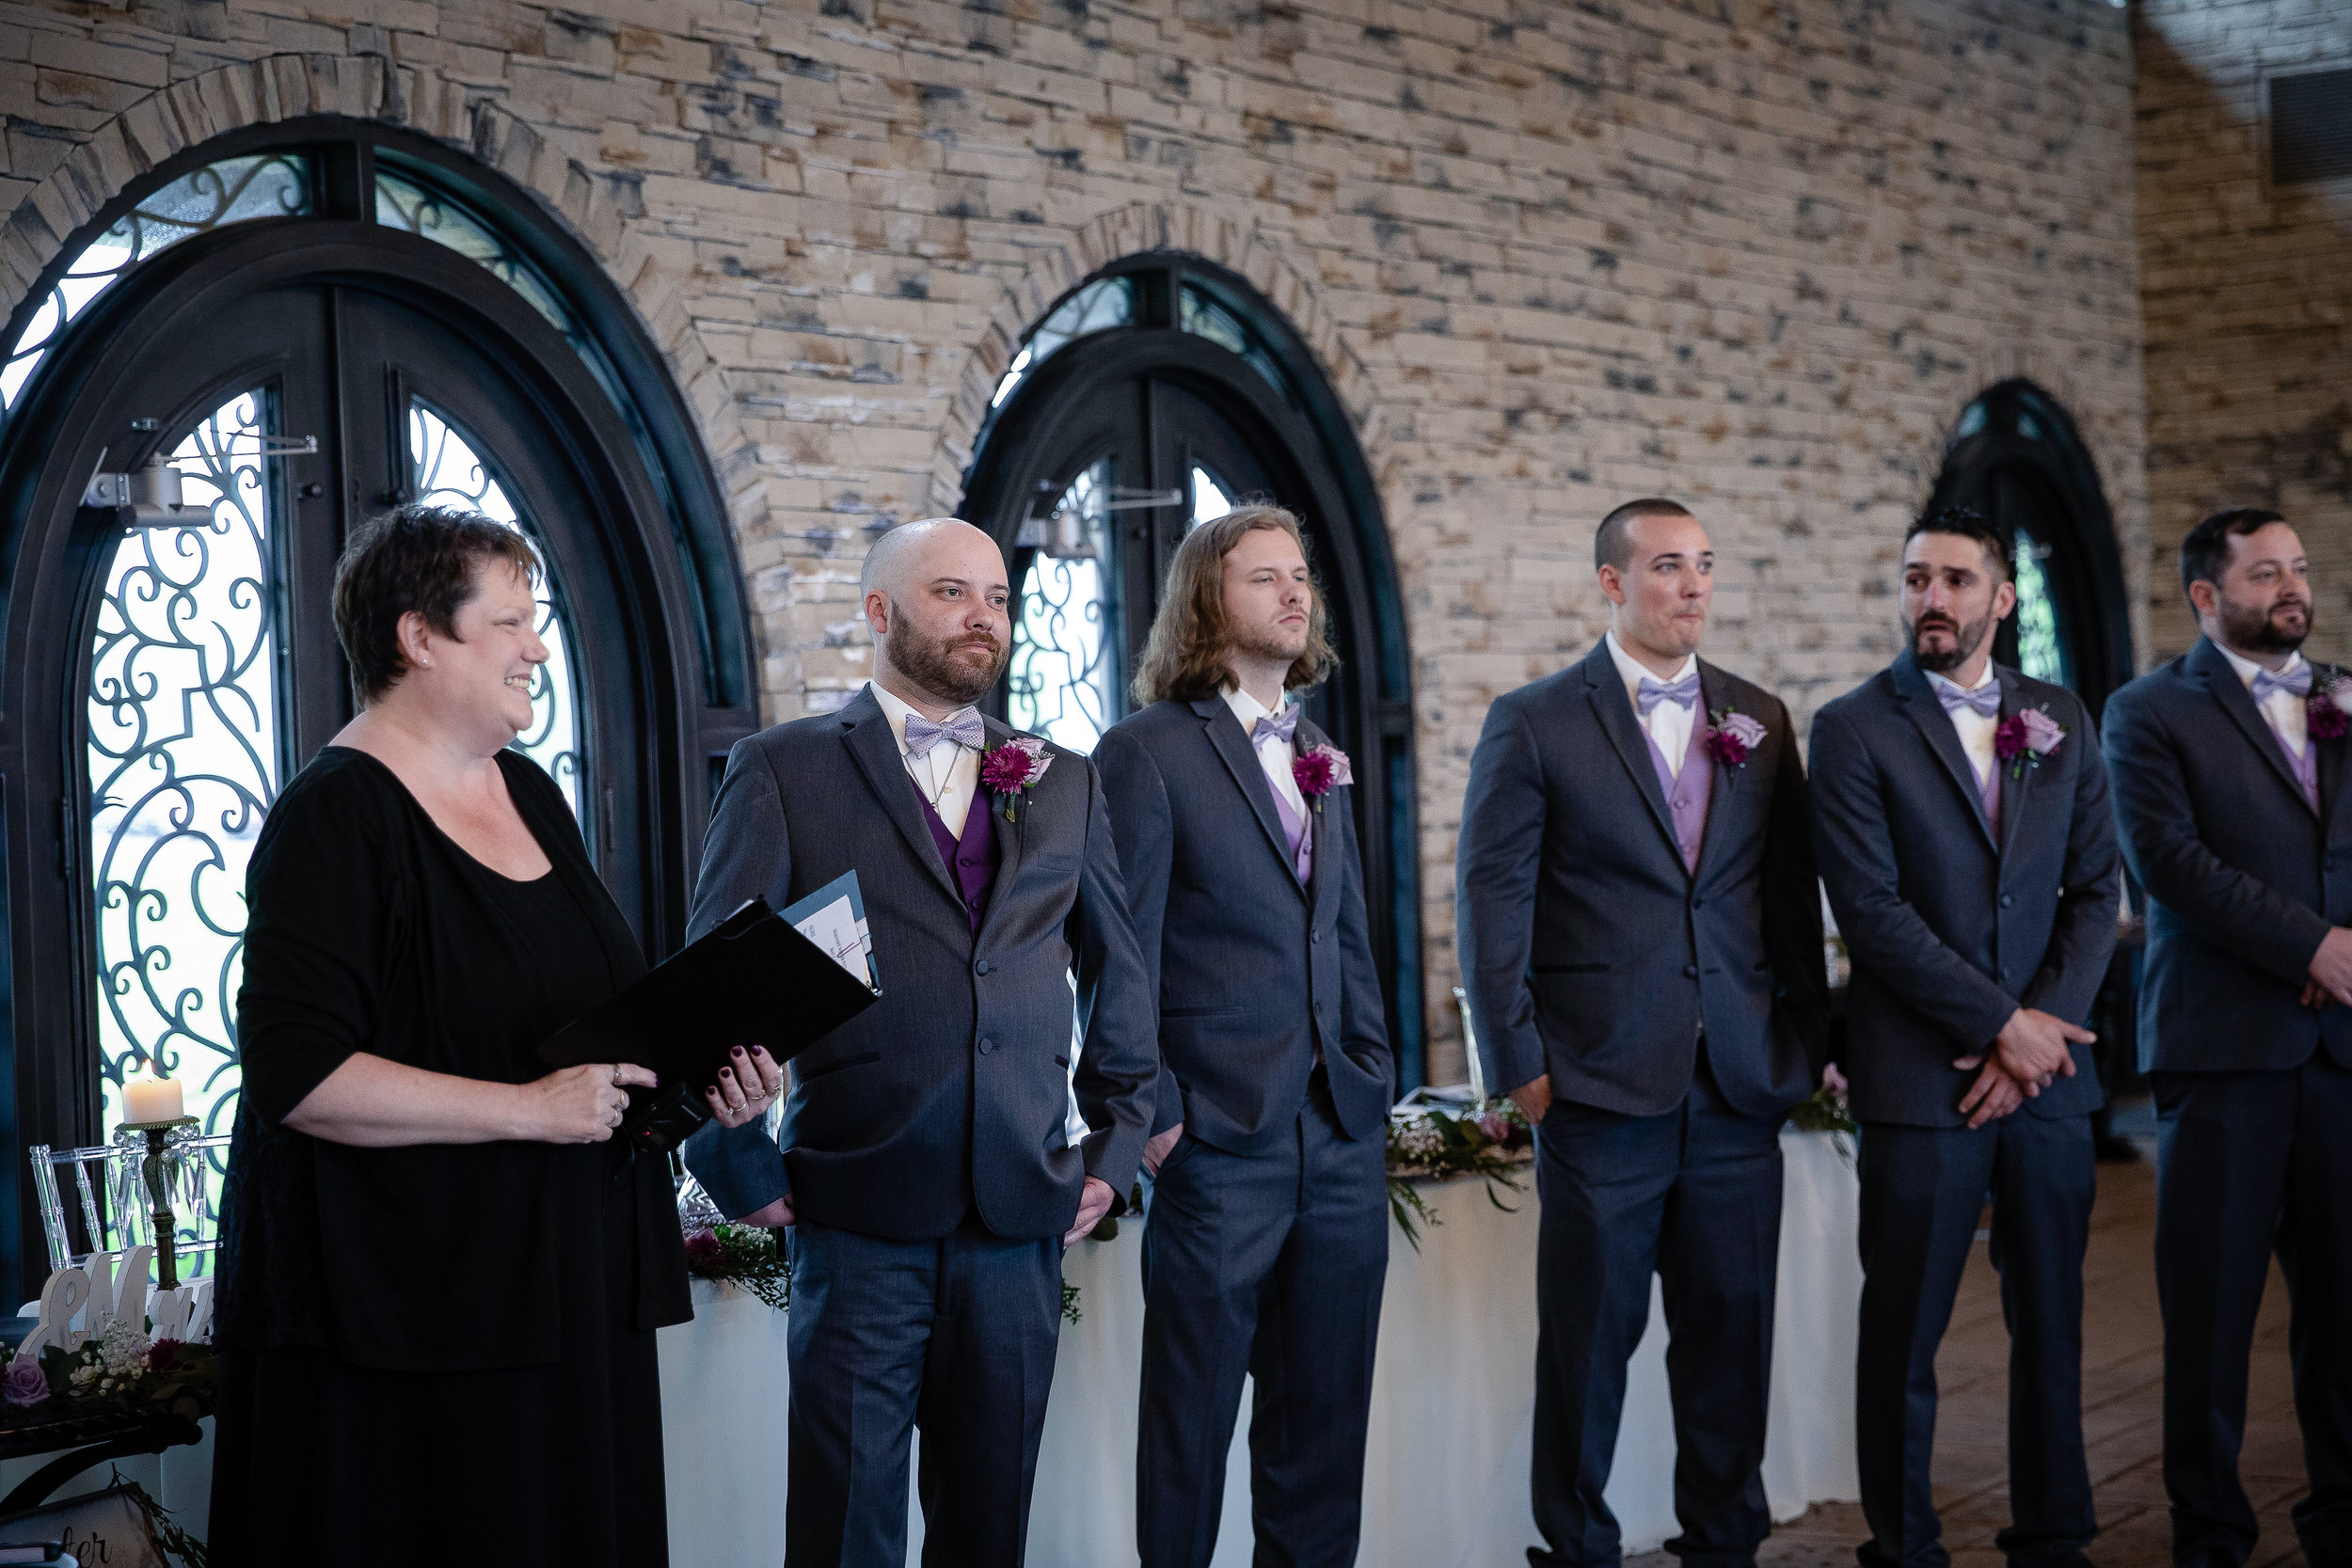 I don't know who's face I adore more here, the groom's, the bride's brother, or the groomsmen's!!!